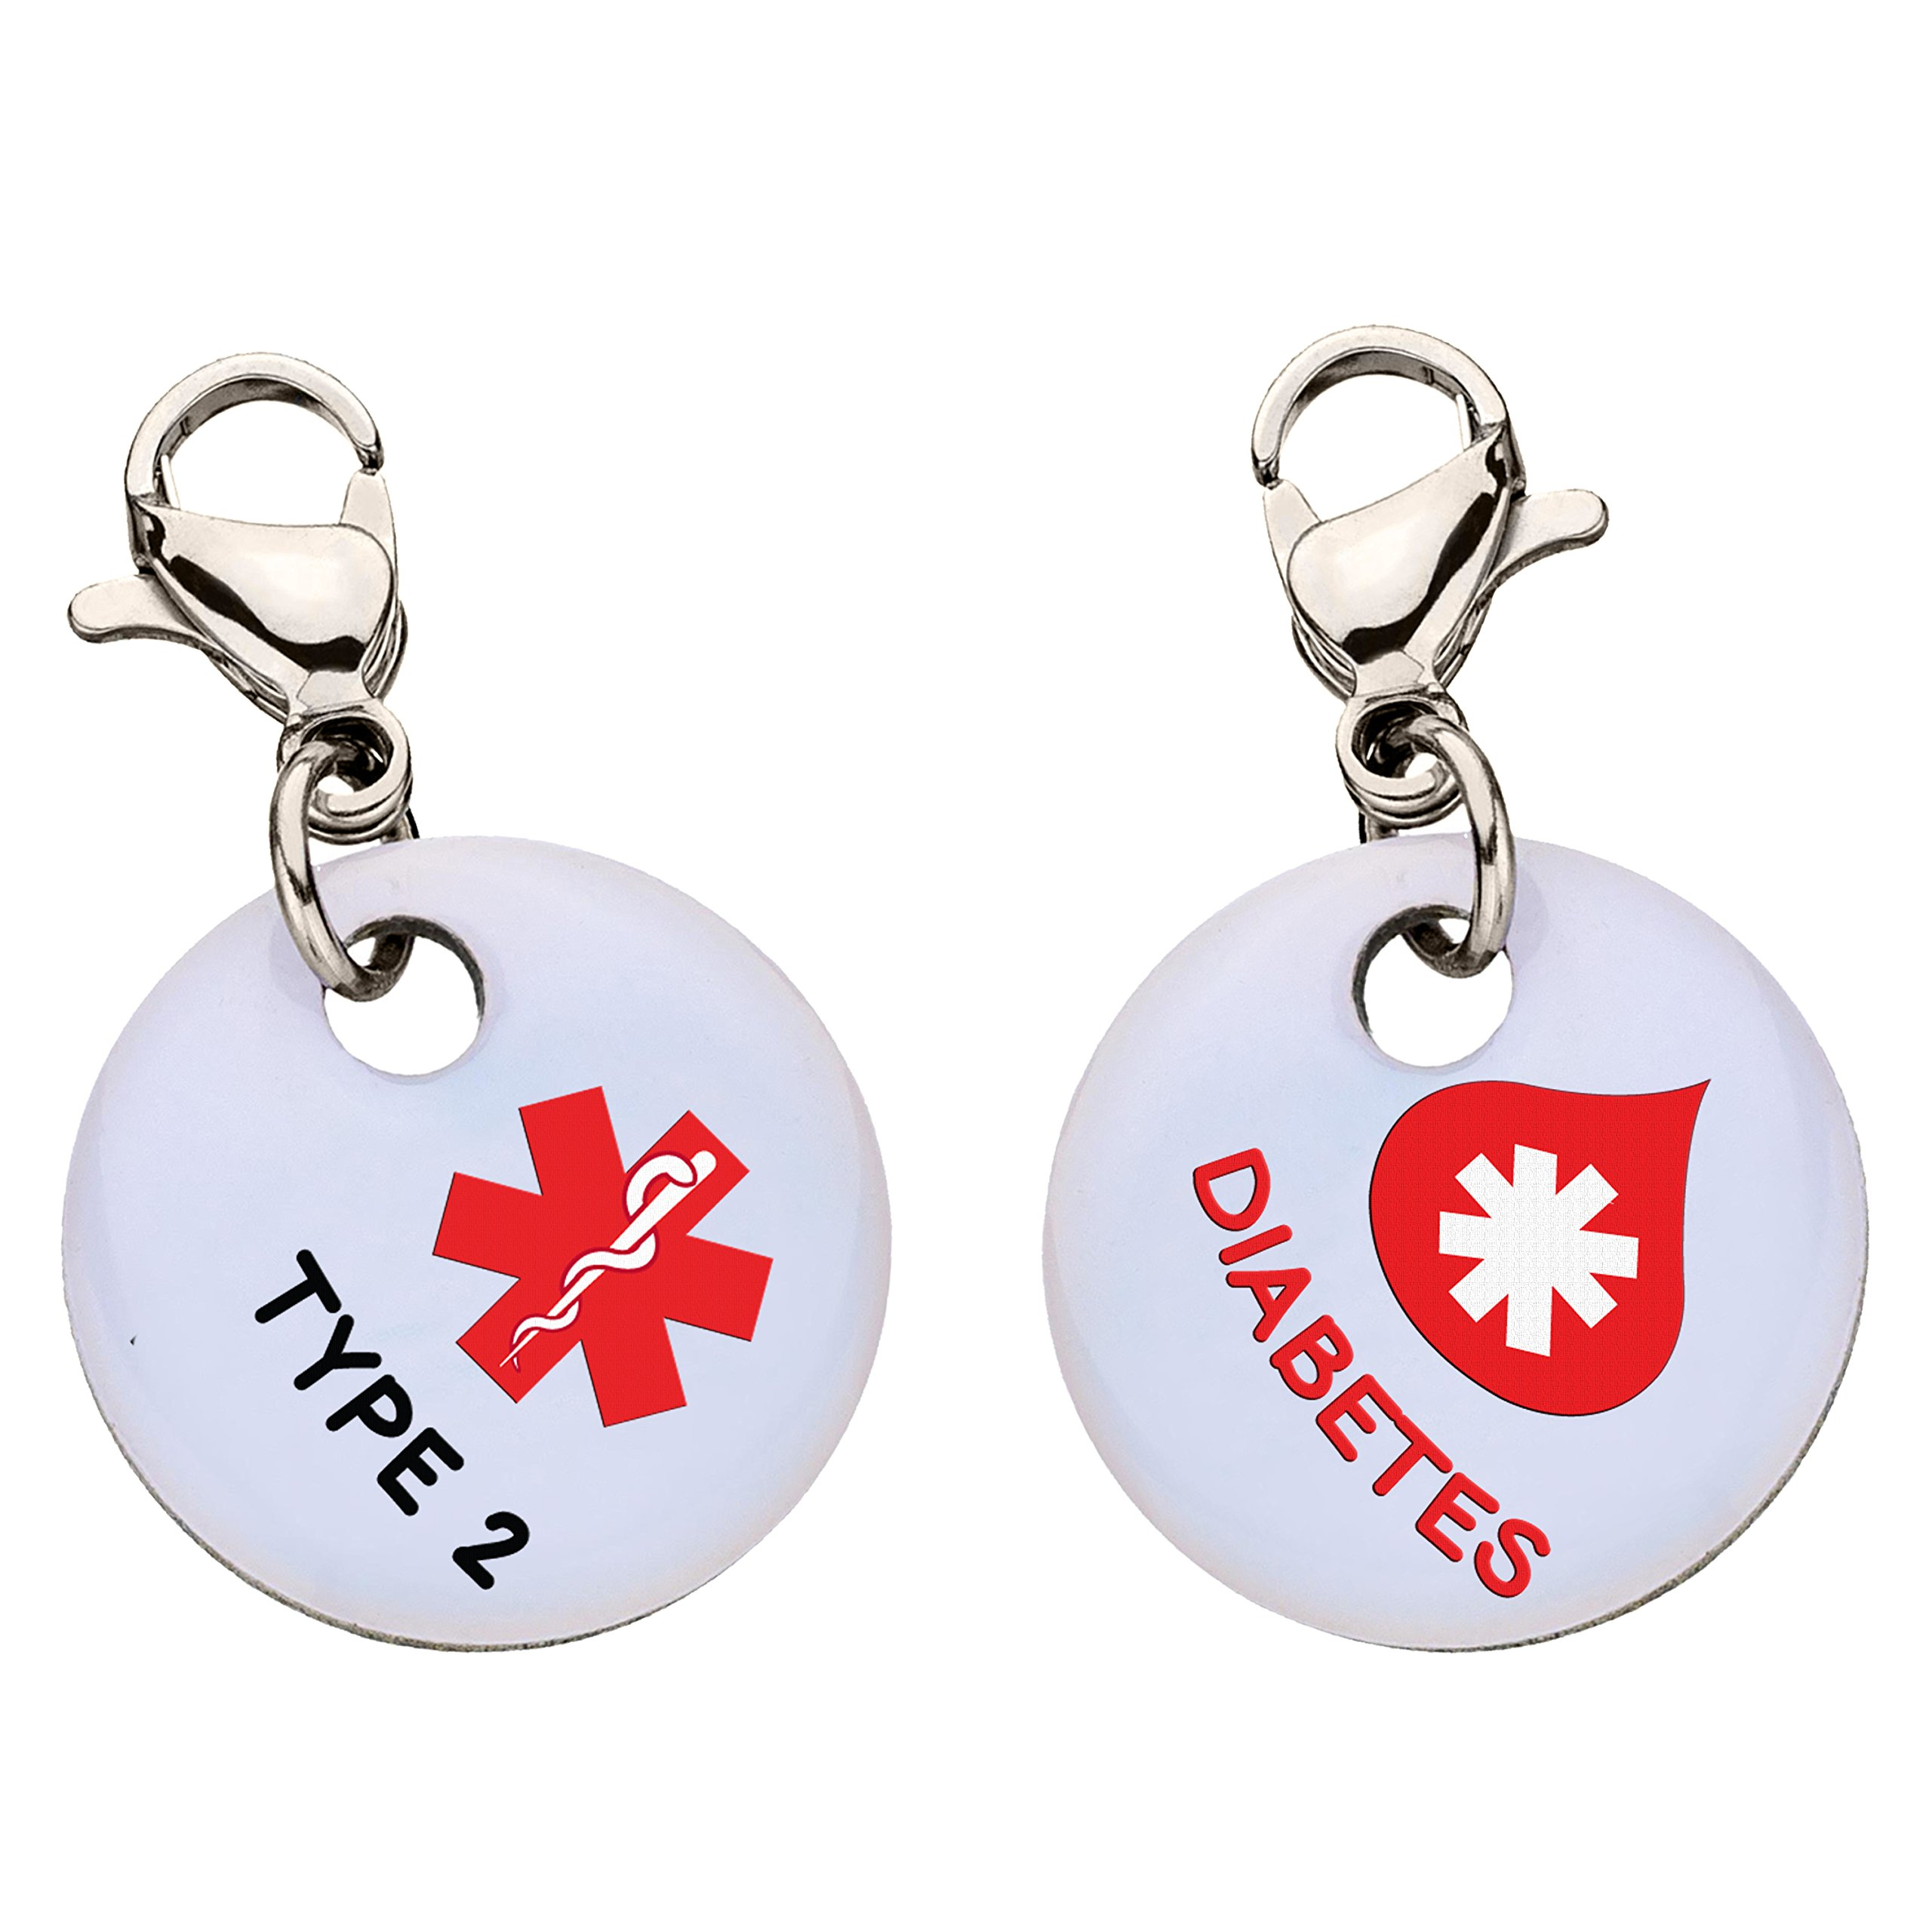 Diabetes Type 2 Red Blood Drop Snap-On Bracelet Charm-Parent (Stainless Steel),80 by My ID Square (Image #1)